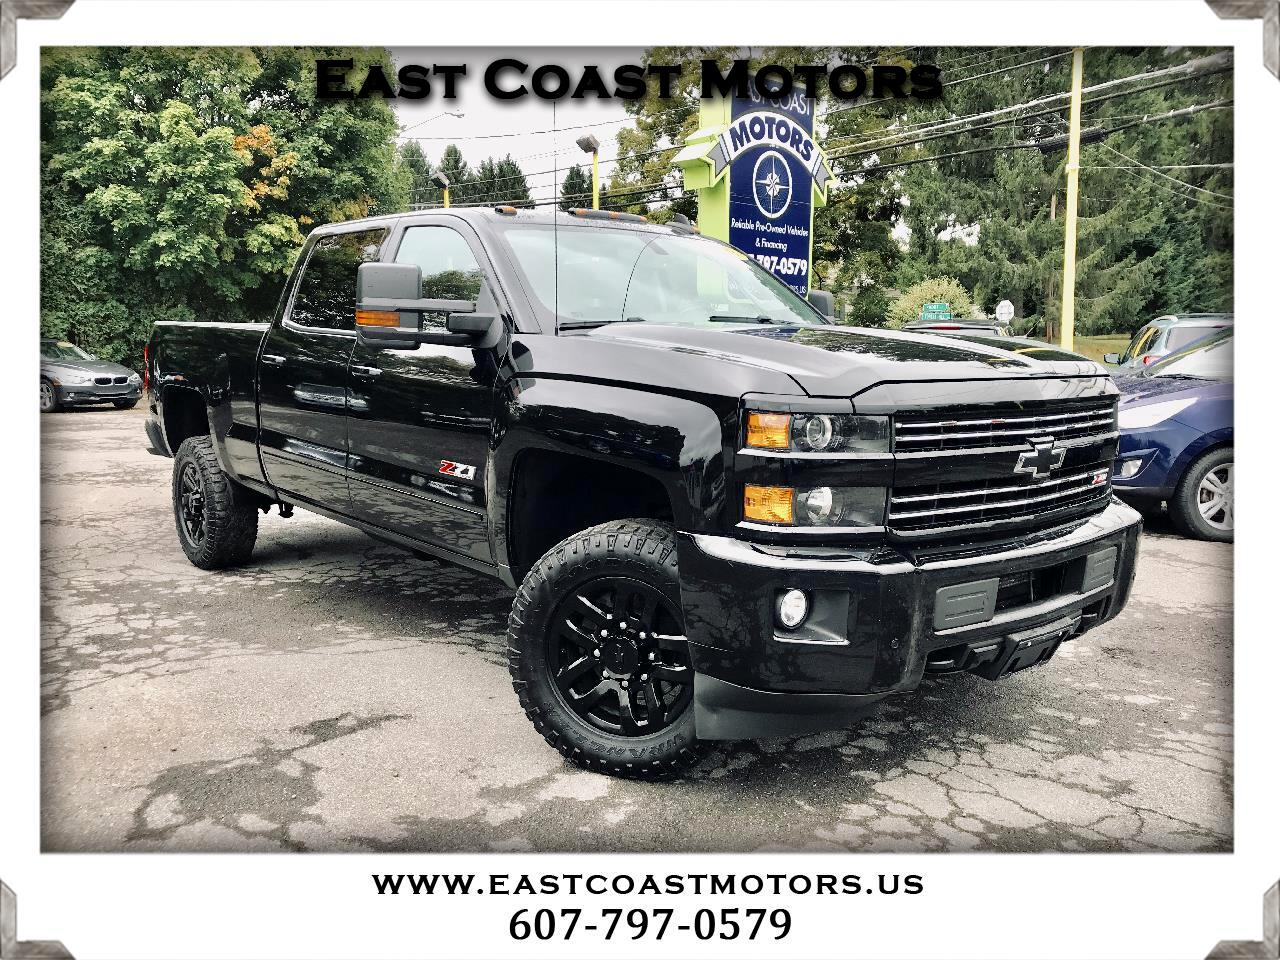 2016 Chevrolet Silverado 2500HD LT Crew Cab 4WD Midnight Edition Z71